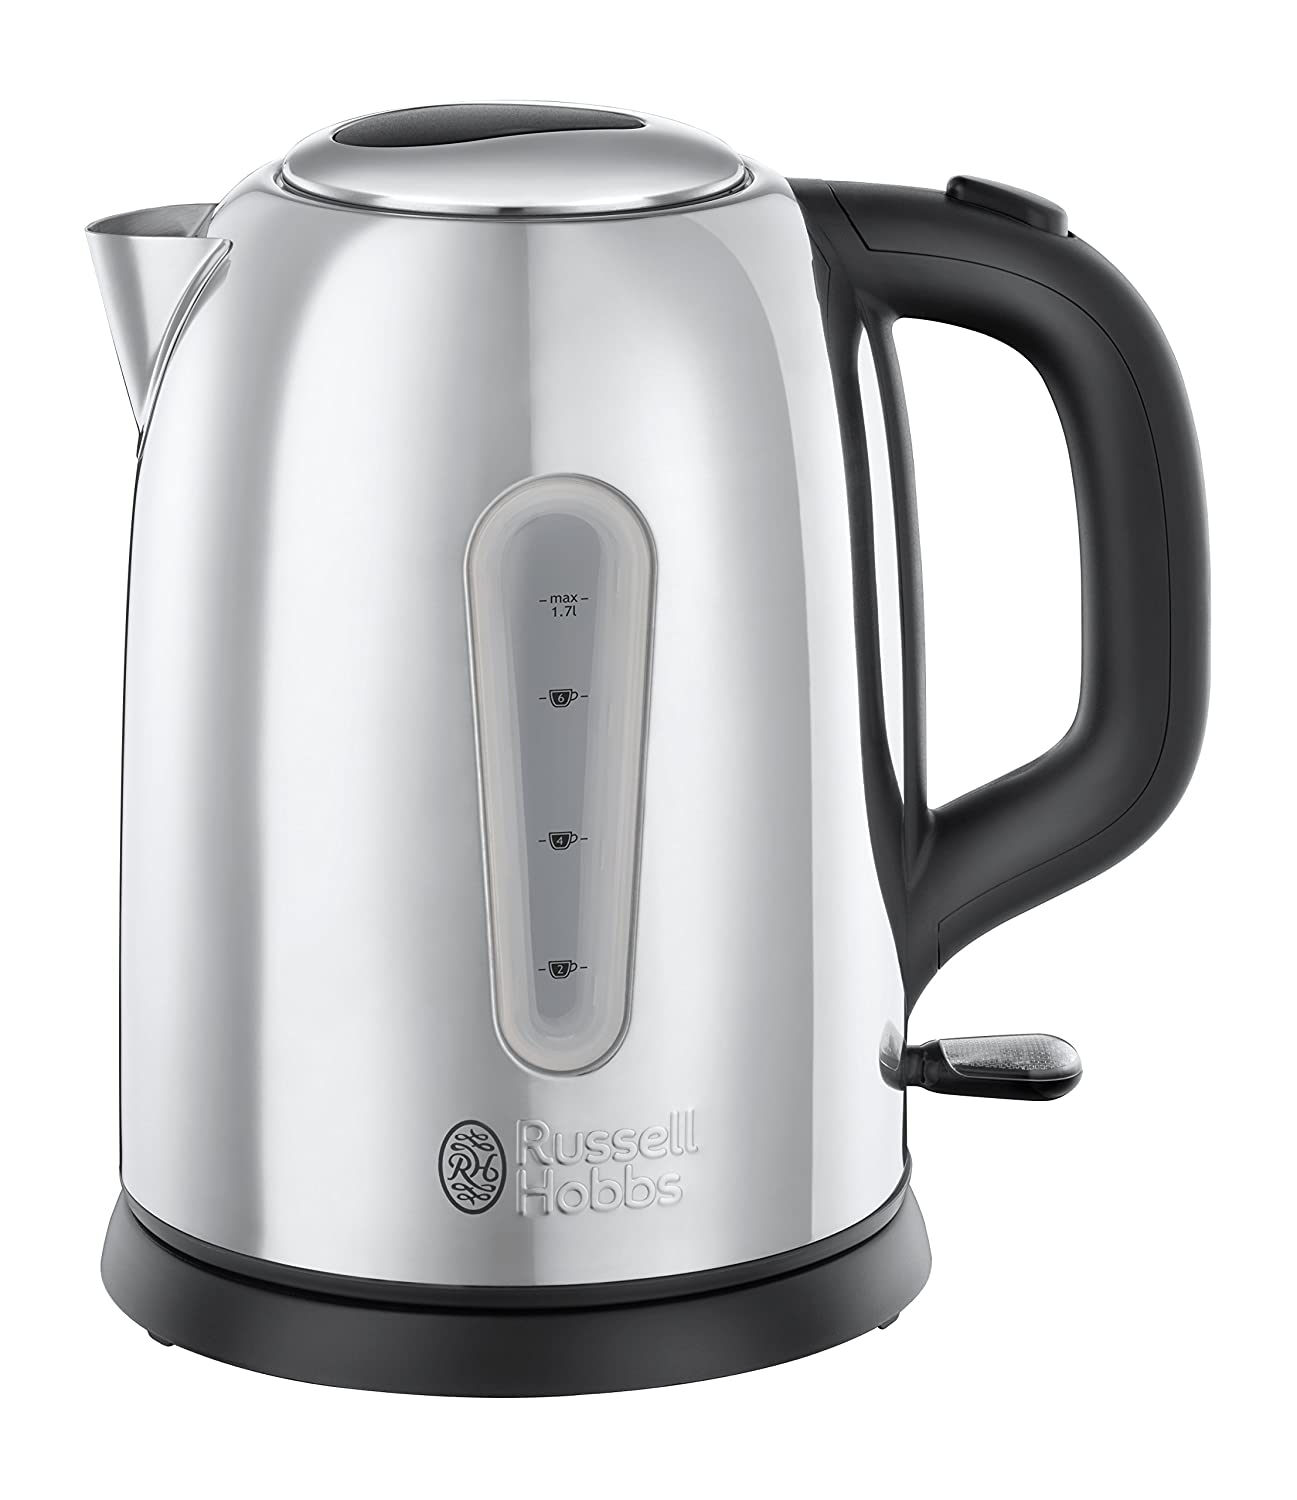 Russell Hobbs 23760 Coniston Kettle, 1.7 Litre, 3000 W, Silver, Stainless Steel, W, 1.7 liters [Energy Class A]